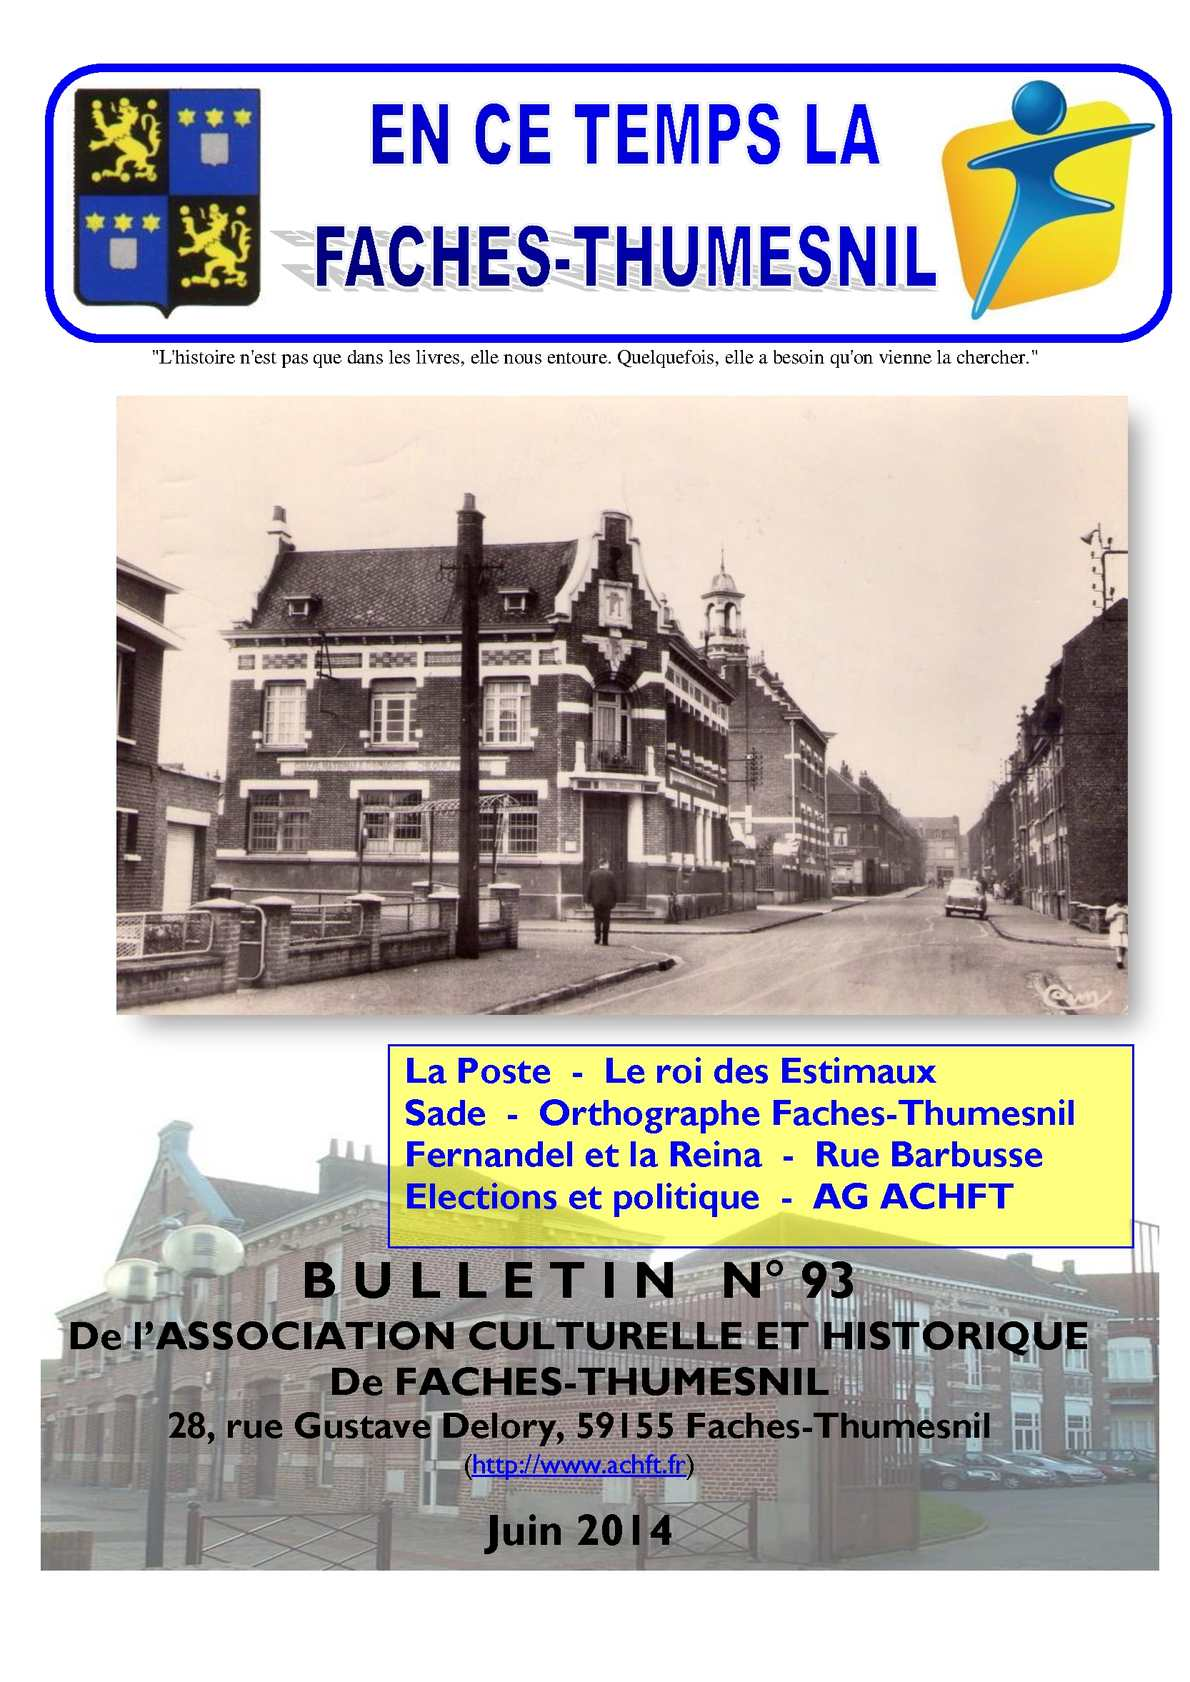 Calam o bulletin de l 39 association culturelle et for Arcadim faches thumesnil